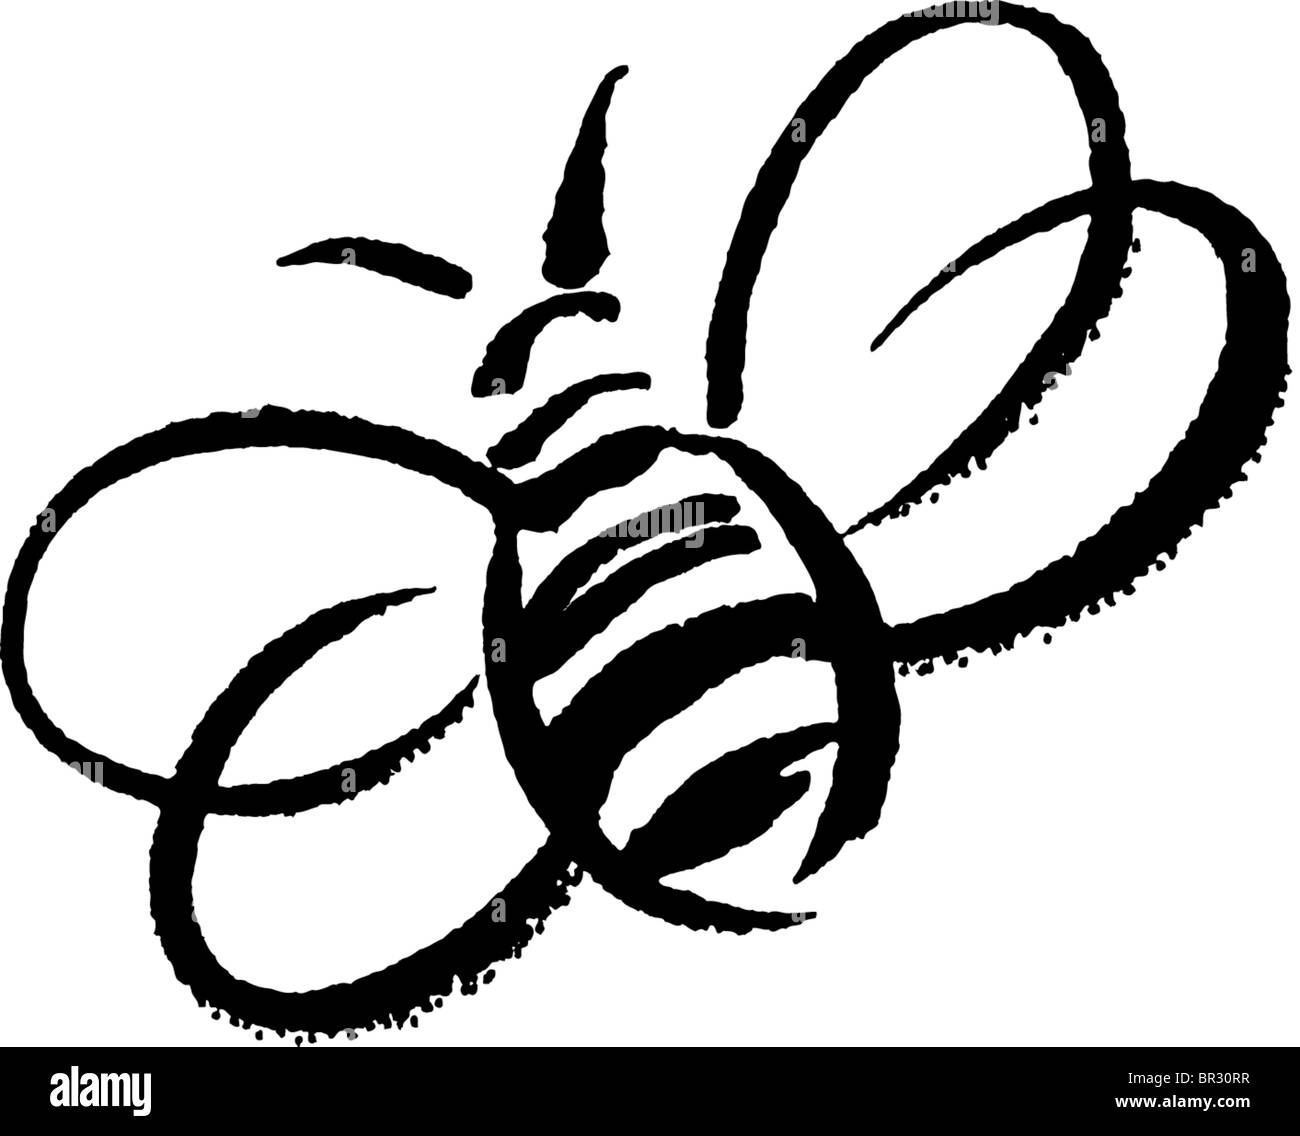 A black and white drawing of a bumblebee stock photo 31413979 alamy a black and white drawing of a bumblebee buycottarizona Gallery